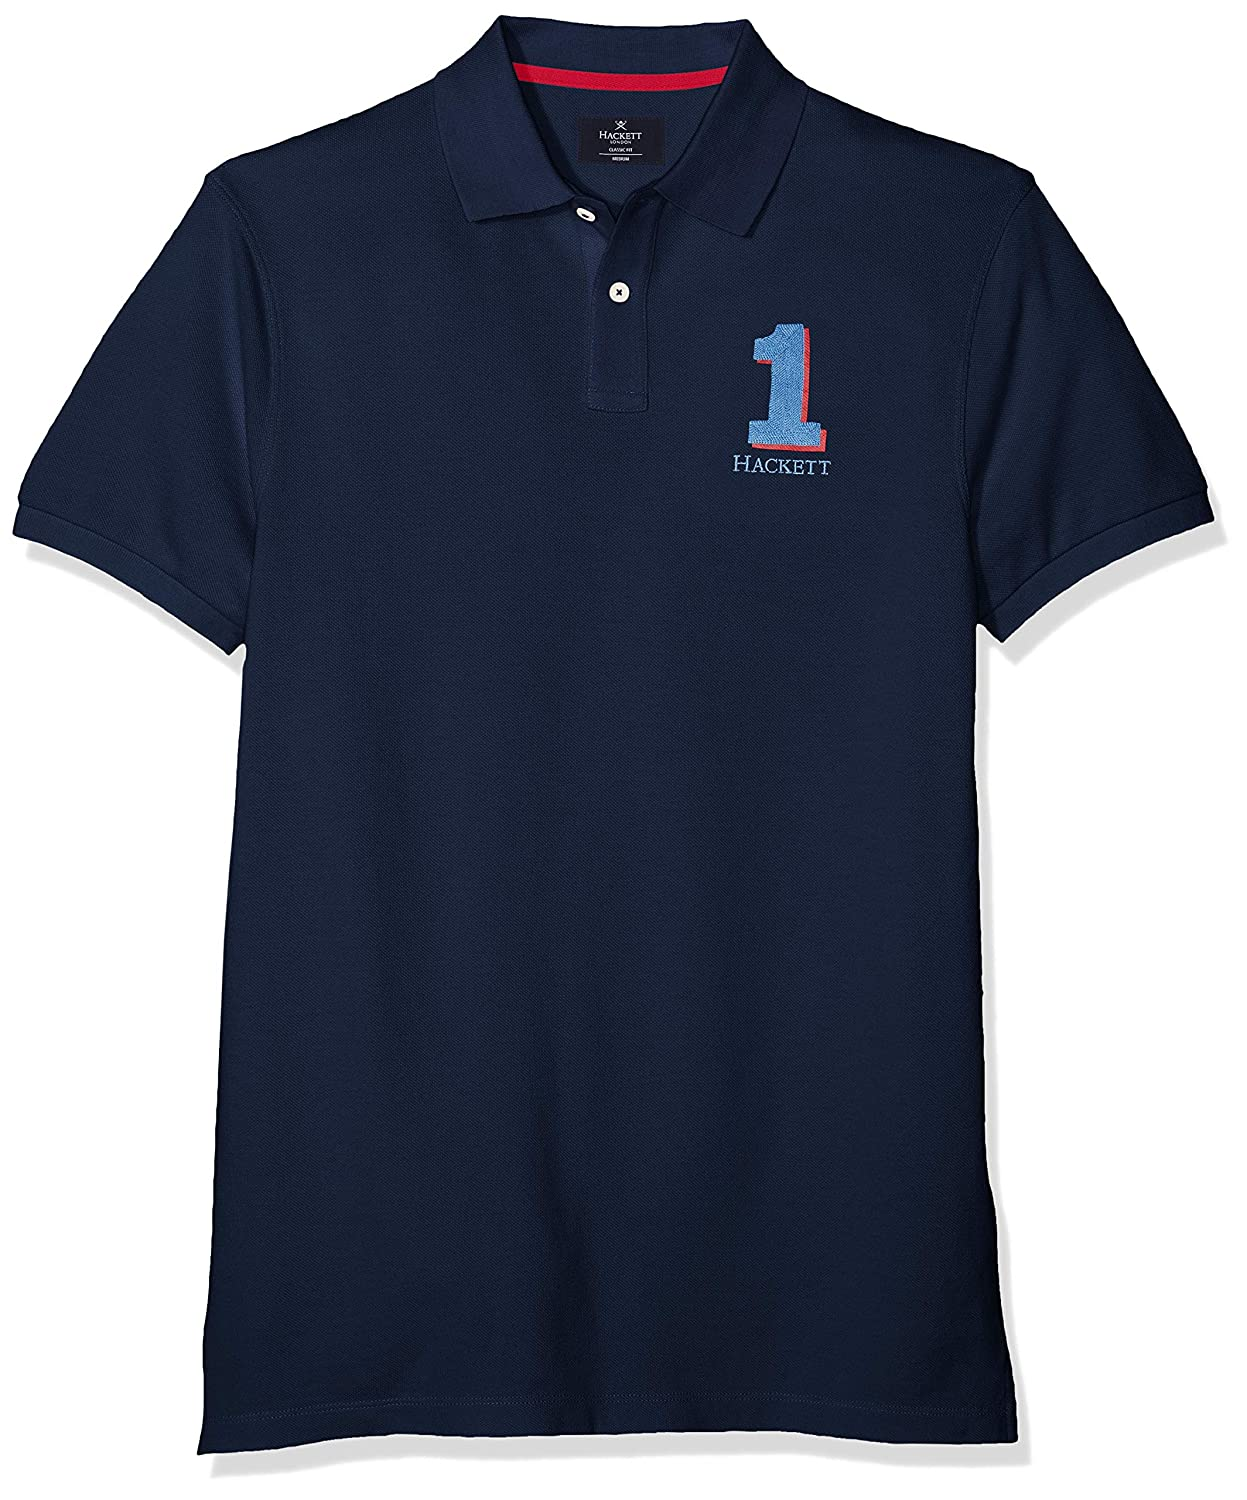 Bleu (Navy 595) XL Hackett London nouveau Classic Polo Homme